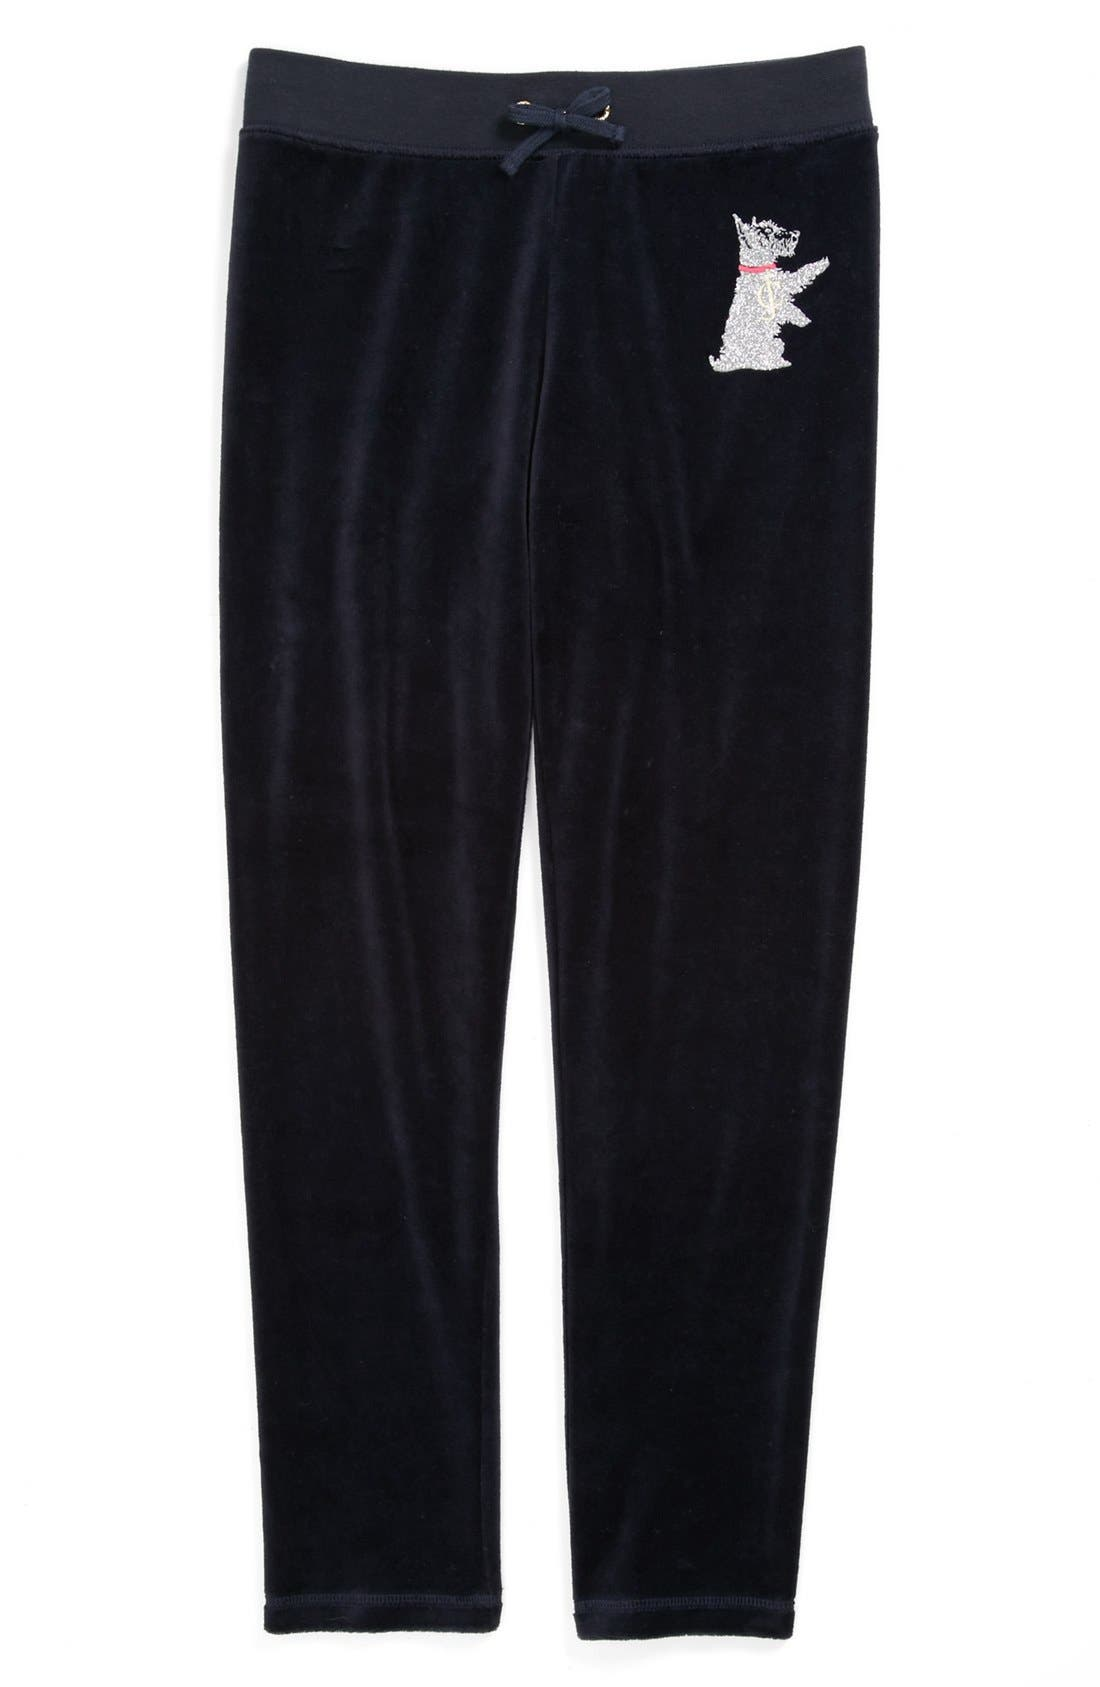 Alternate Image 1 Selected - Juicy Couture 'Glitter Scottie' Velour Pants (Little Girls & Big Girls)